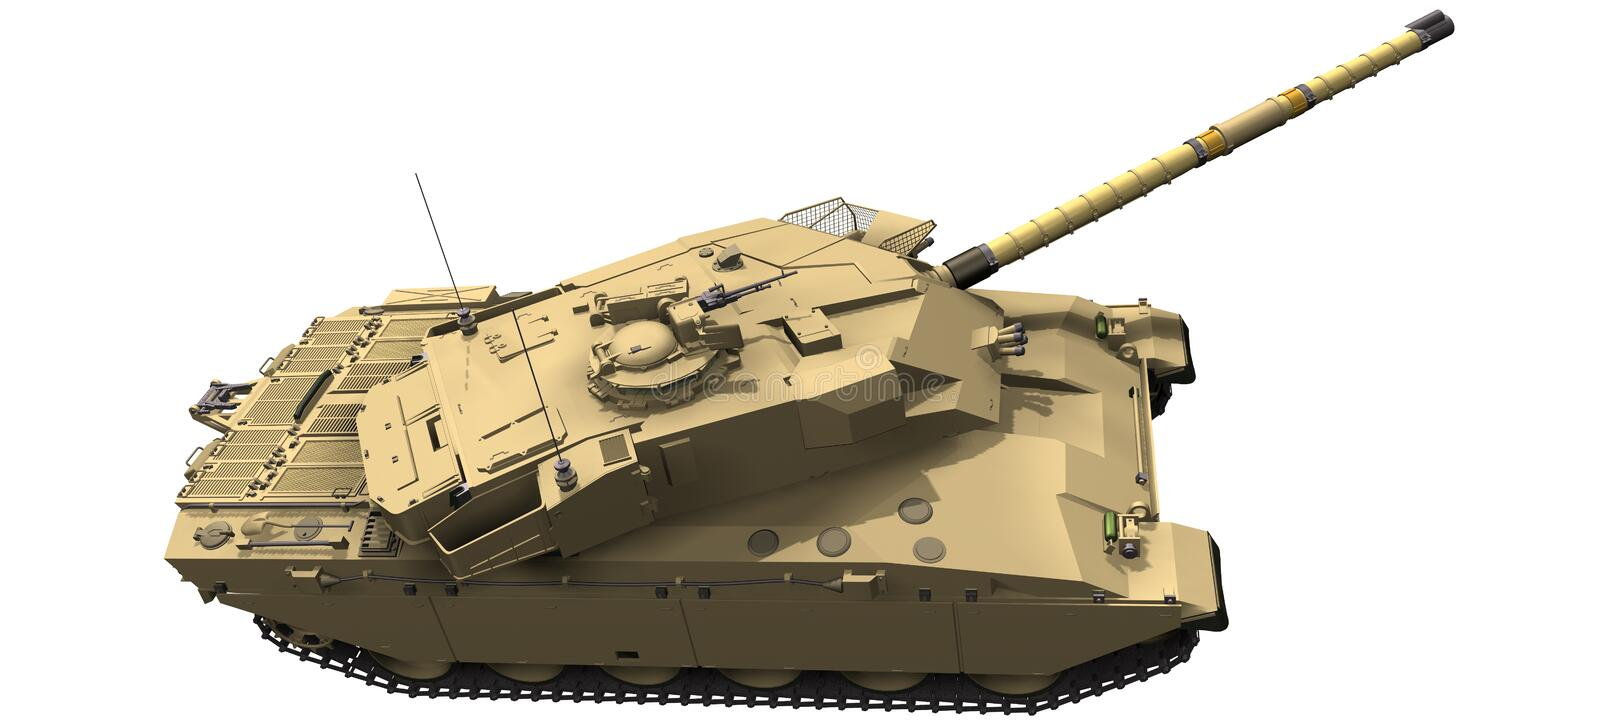 3d Rendering of a Challenger Tank royalty free illustration